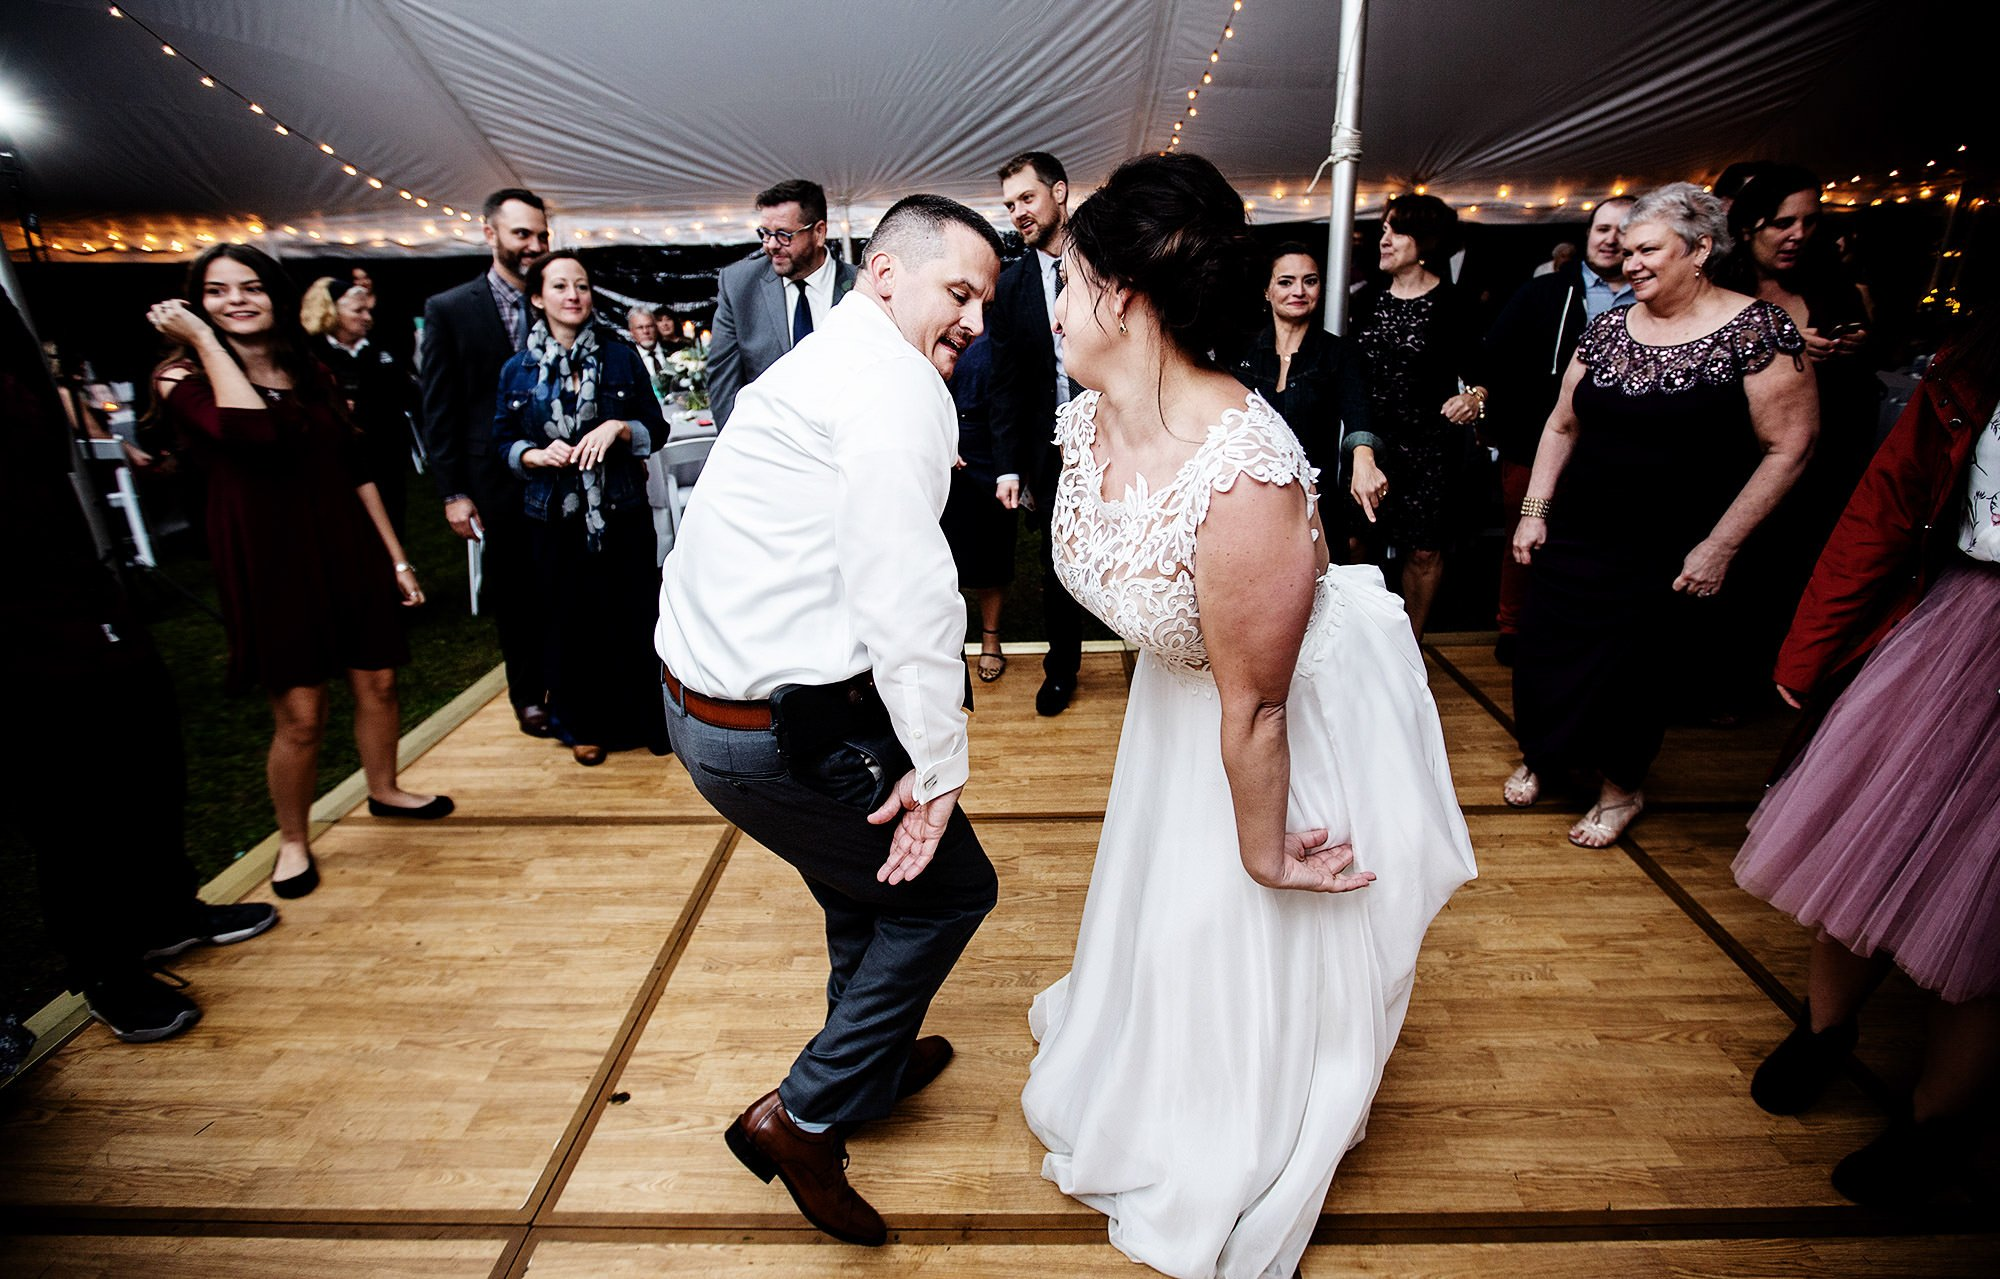 The bride and groom dance during their tented wedding reception at Pelham House Resort.